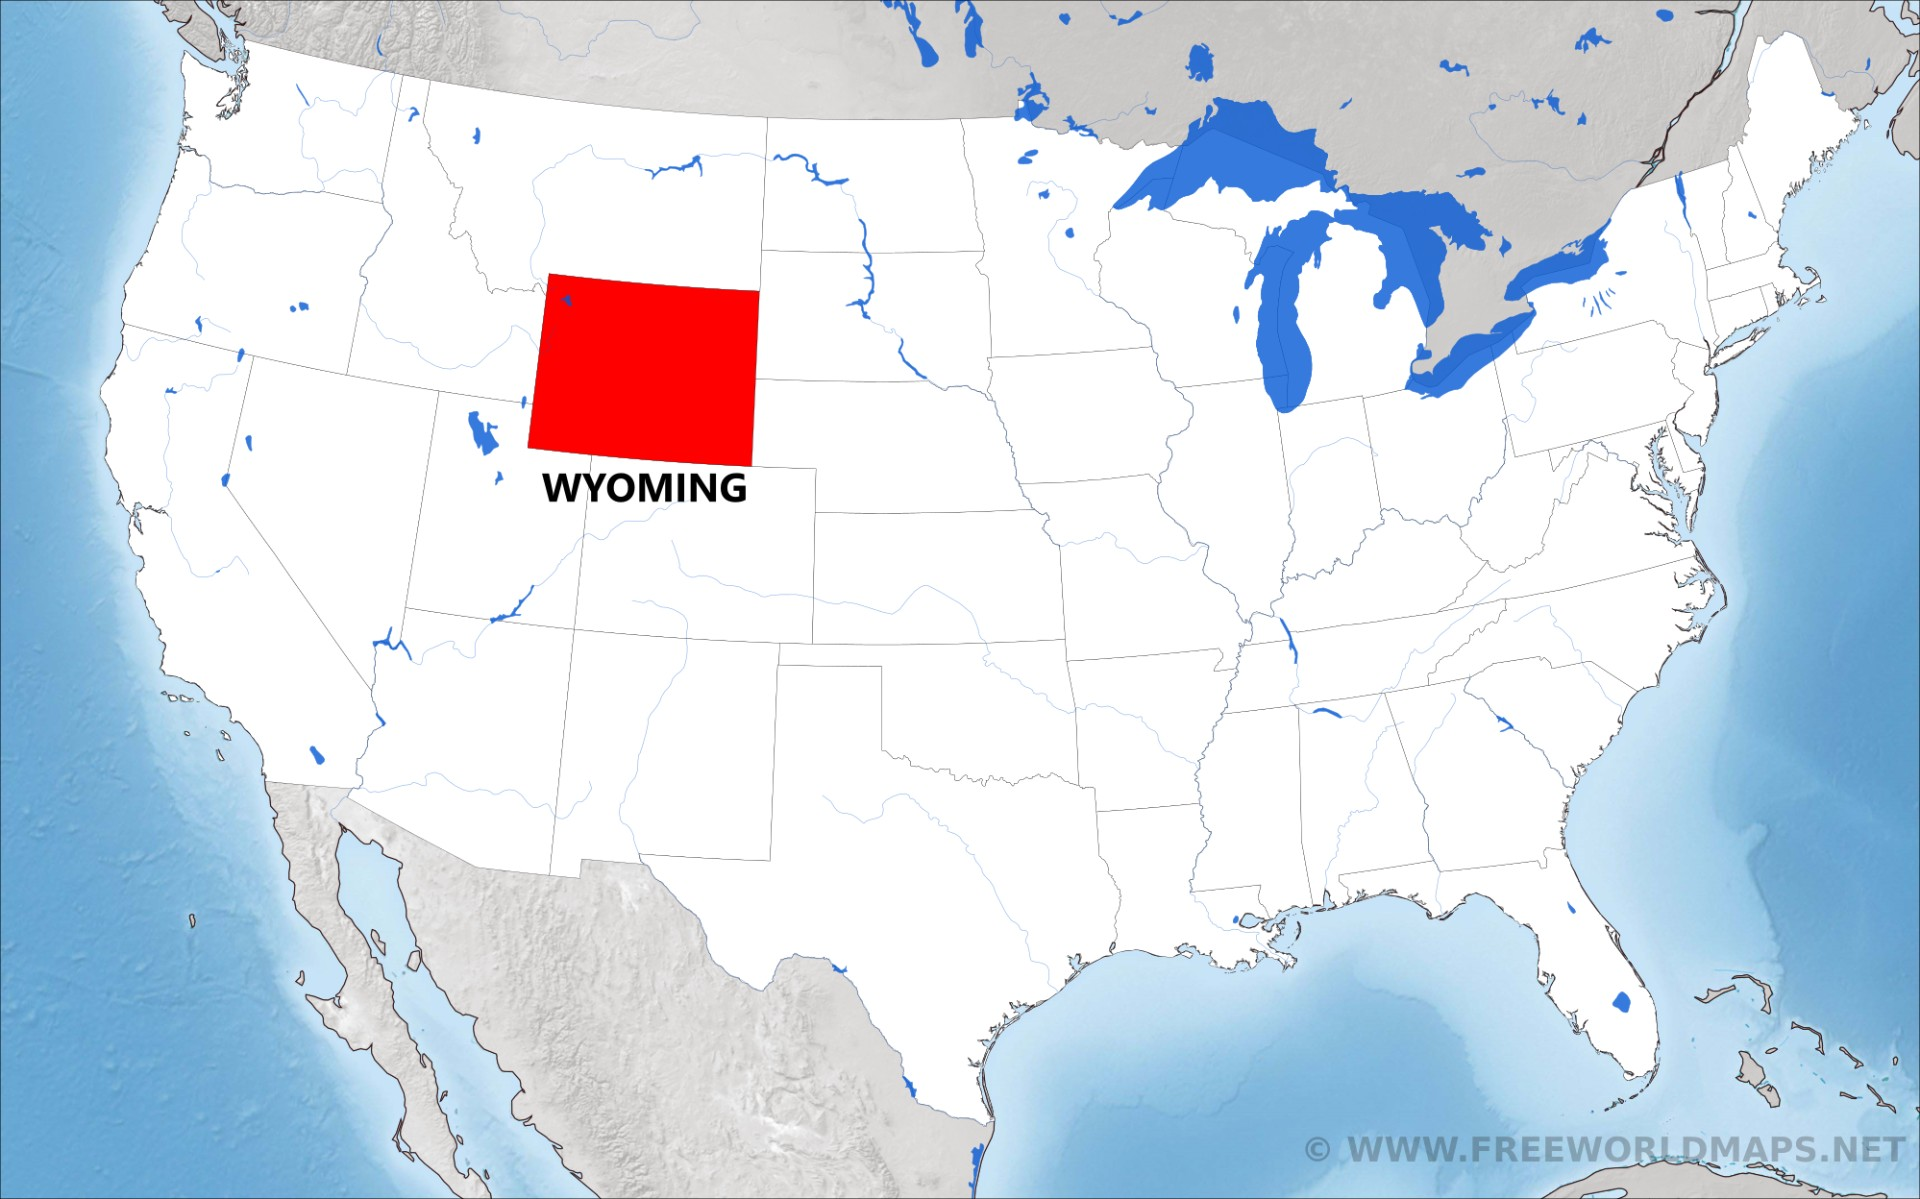 Wyoming On Map Where is Wyoming located on the map? Wyoming On Map